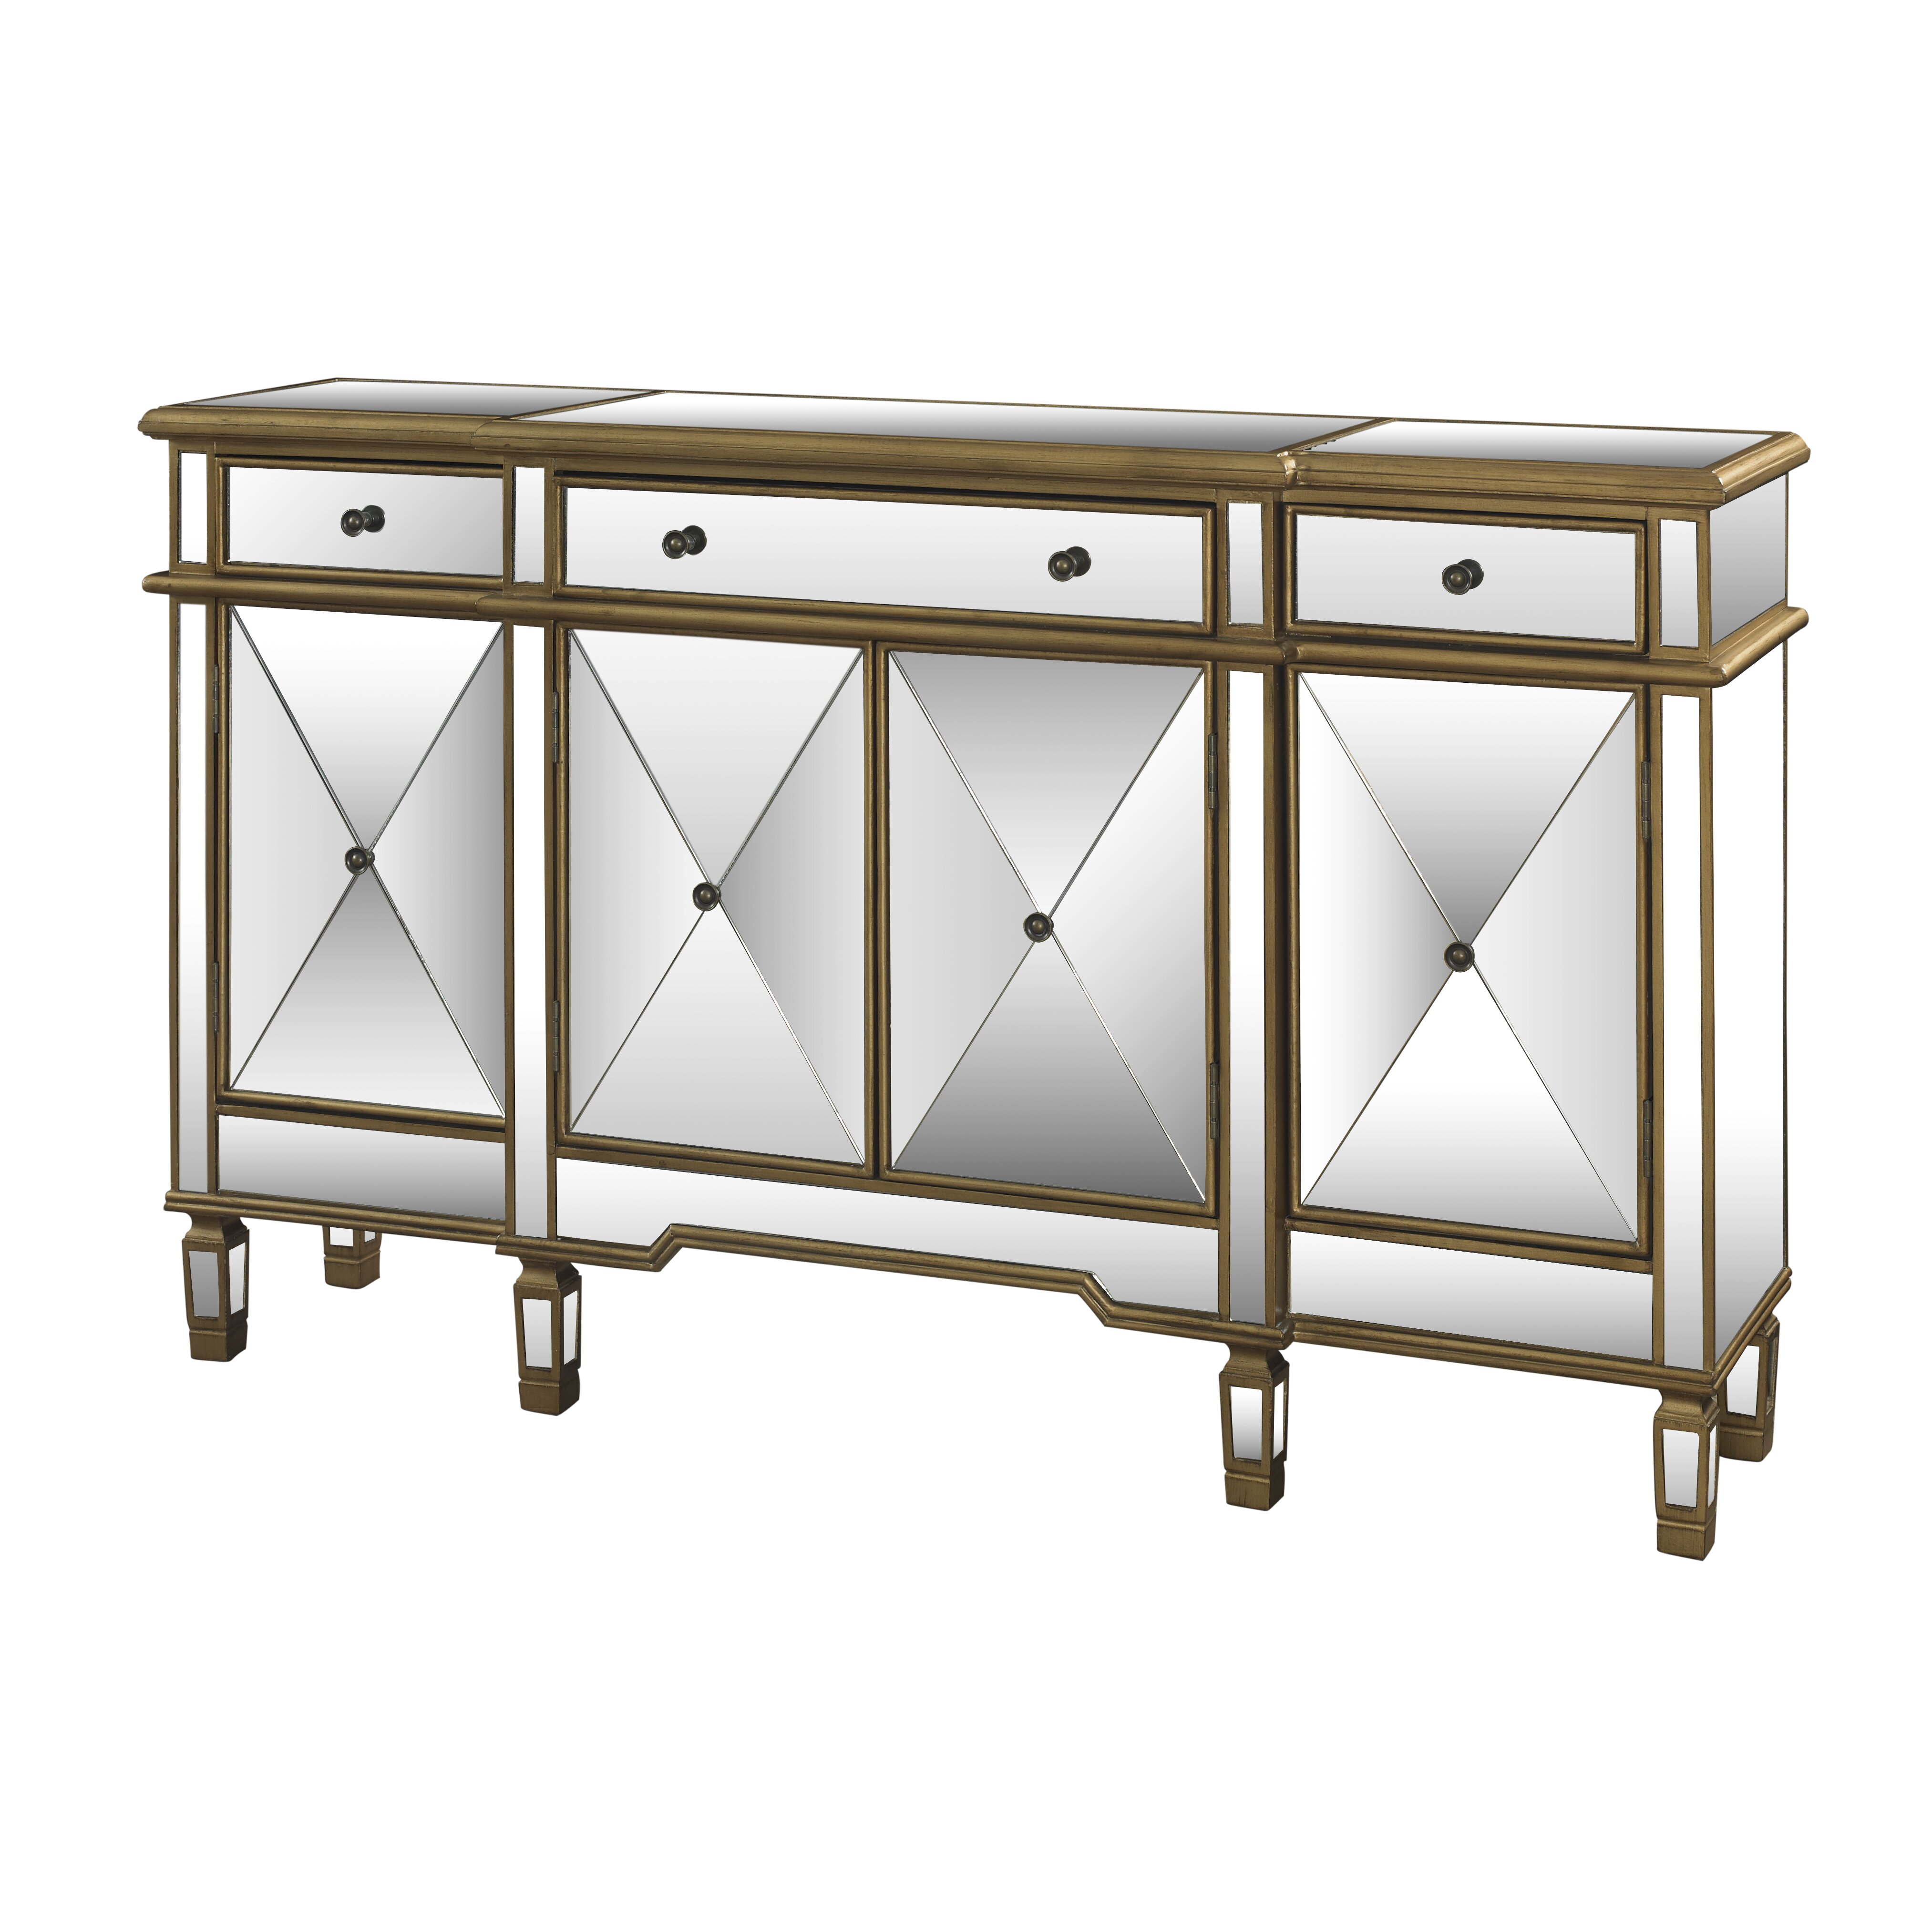 Mercer41 Jaffe 3 Drawer Mirrored Console Table Reviews